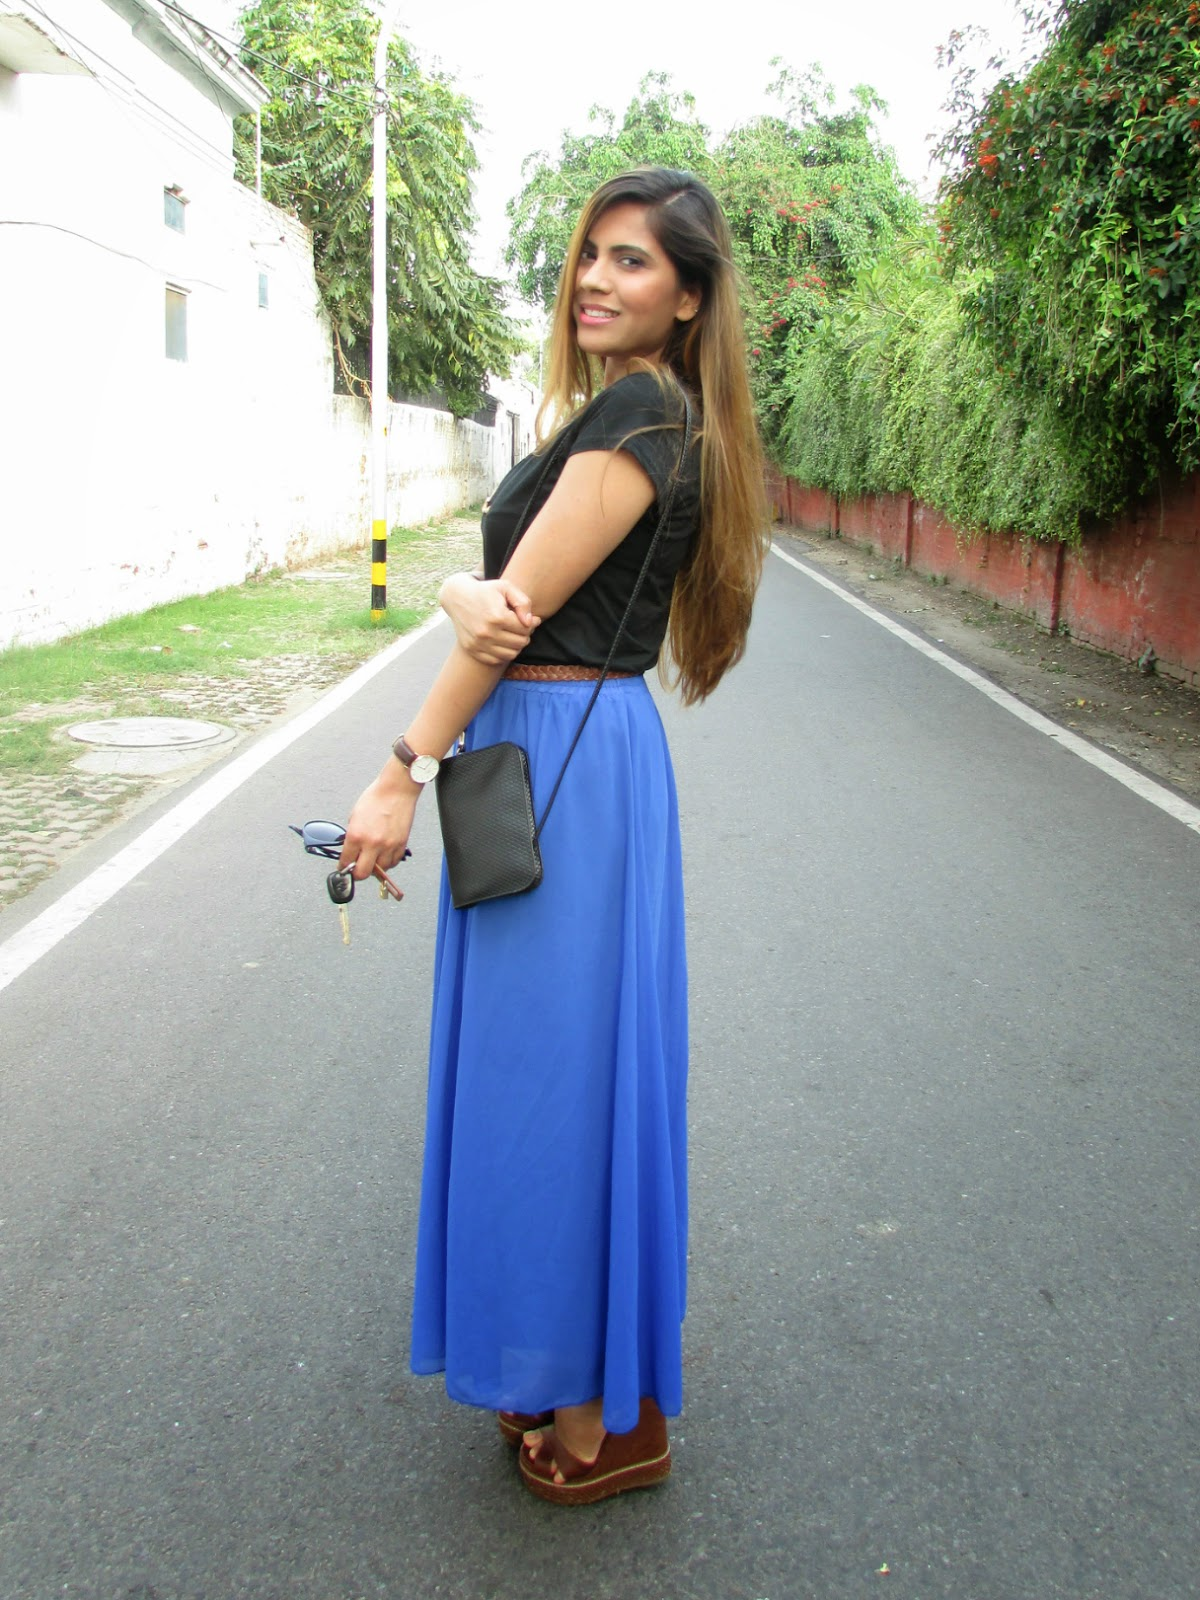 How to style maxi skirt, summer trends 2915, Indian fashion blogger, retro style, cheap maxi skirt online, popbasic, double string necklace, retro outfit, fashion, popbasic review, maxi skirt simple tshirt, maxi skirt of petites, how to look tall in maxi skirt, ombre haie, best hair color for summers, summer hair, maxi skirt for short people, blue maxi skirt, summer jewelry trends 2015, spring fashion trends 2015, beauty , fashion,beauty and fashion,beauty blog, fashion blog , indian beauty blog,indian fashion blog, beauty and fashion blog, indian beauty and fashion blog, indian bloggers, indian beauty bloggers, indian fashion bloggers,indian bloggers online, top 10 indian bloggers, top indian bloggers,top 10 fashion bloggers, indian bloggers on blogspot,home remedies, how to